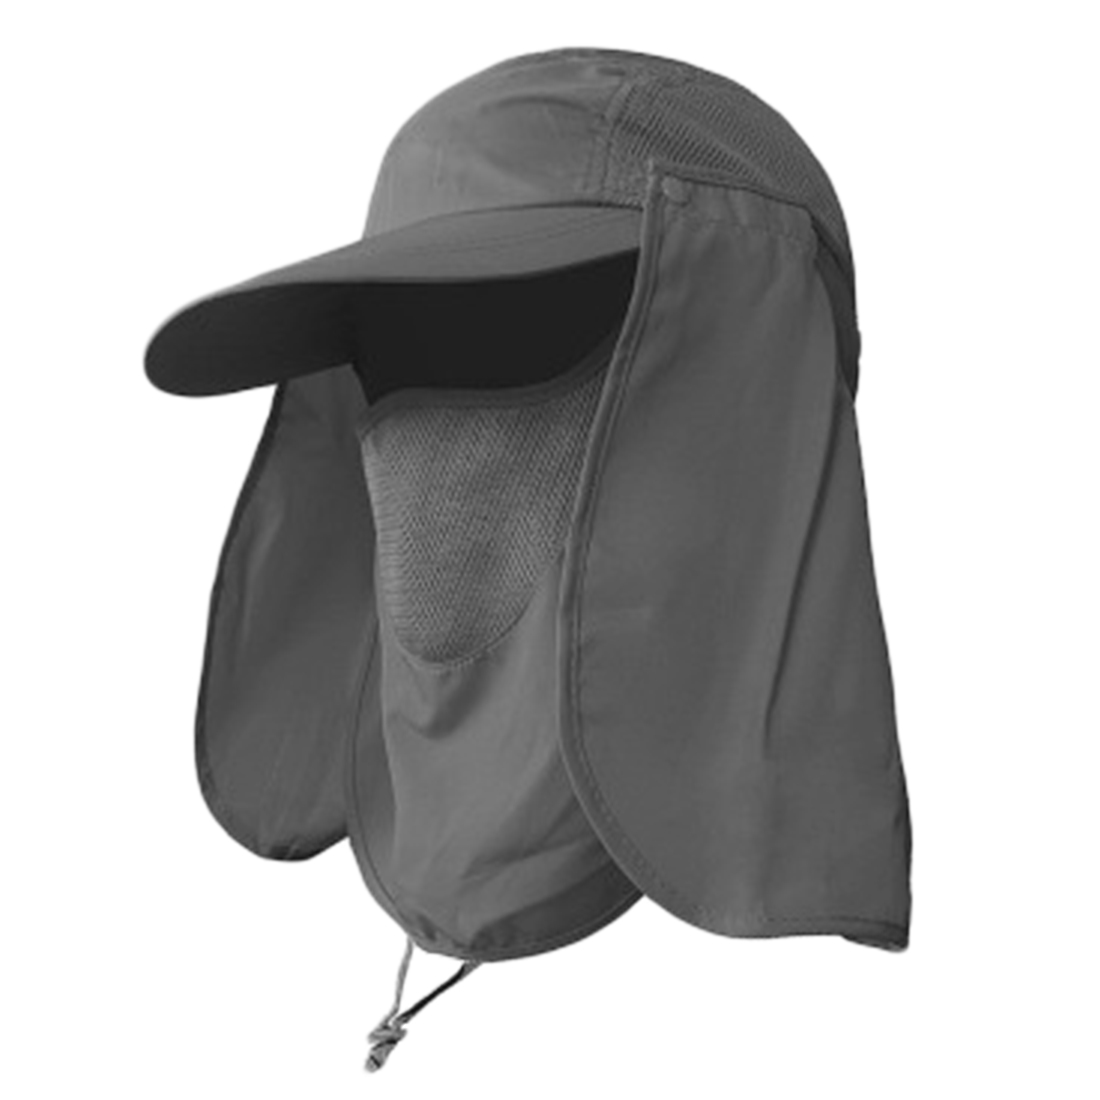 Outdoor Sport Hiking Camping Visor Hat UV Protection Face Neck Cover Fishing Sun Protect Cap Pesca Accessories